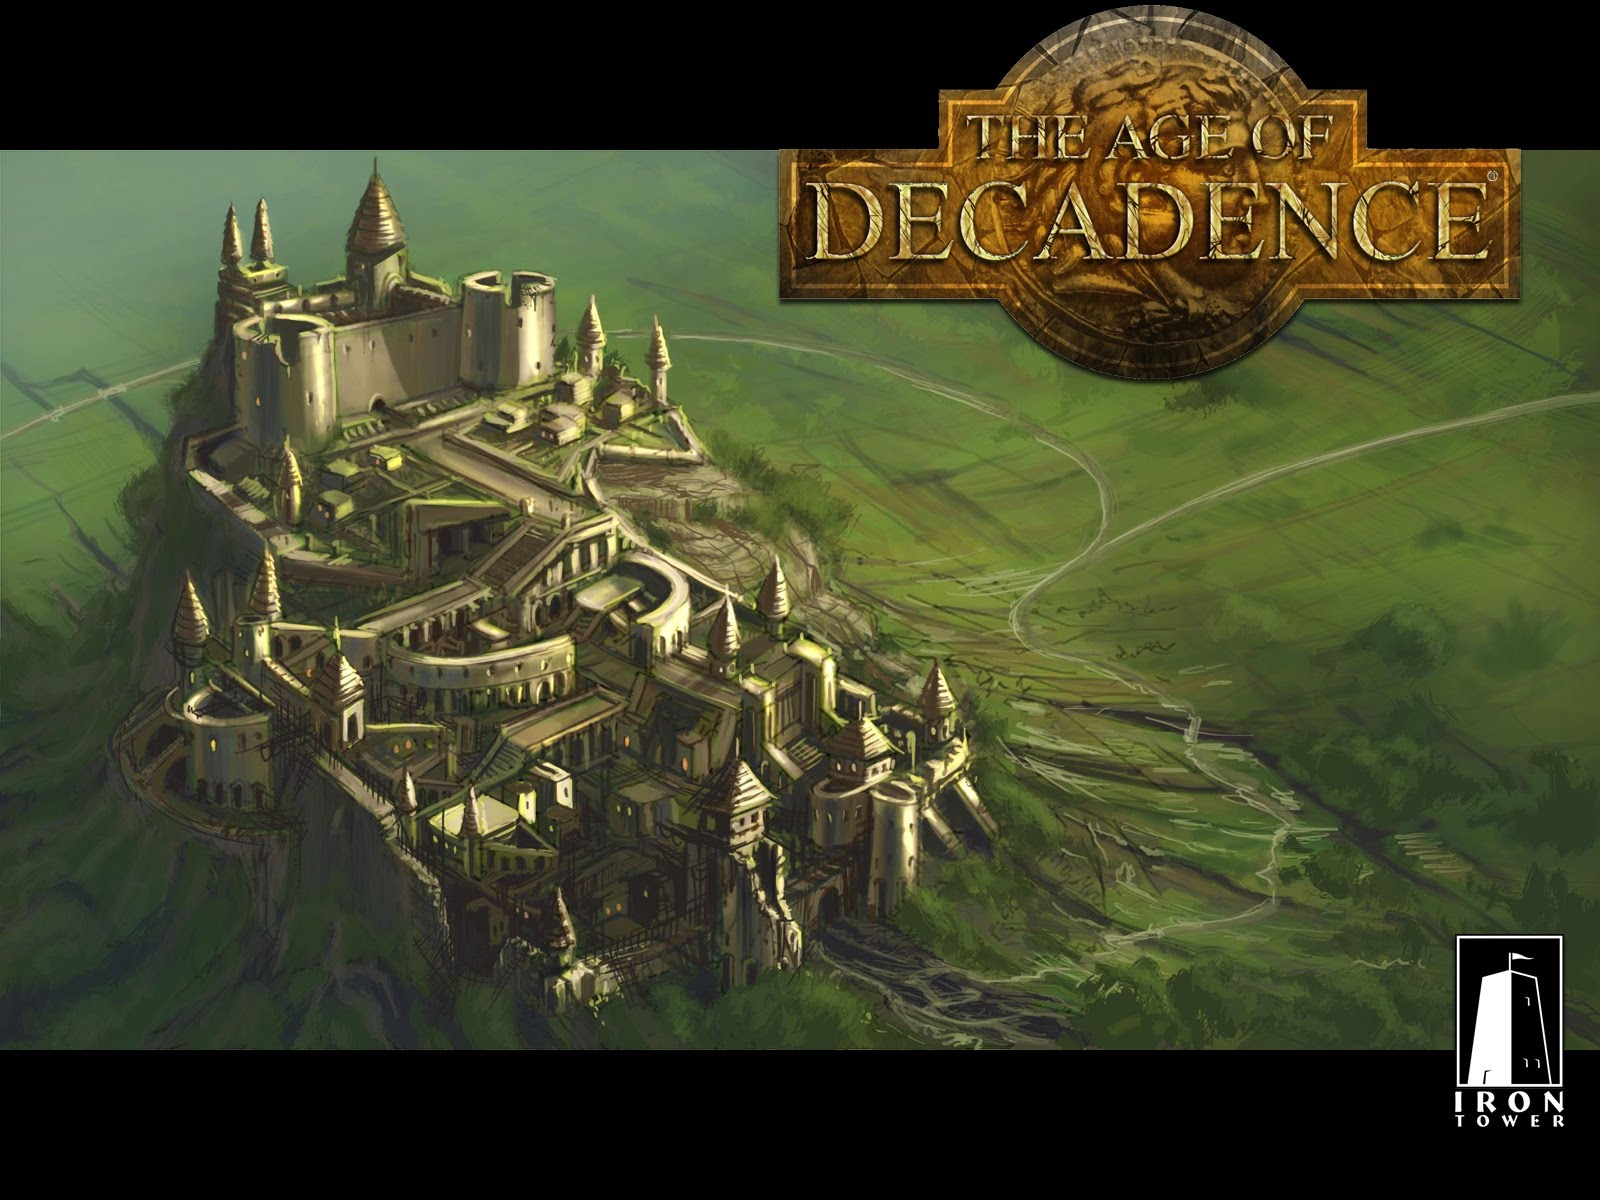 High Resolution Wallpaper   Age Of Decadence 1600x1200 px